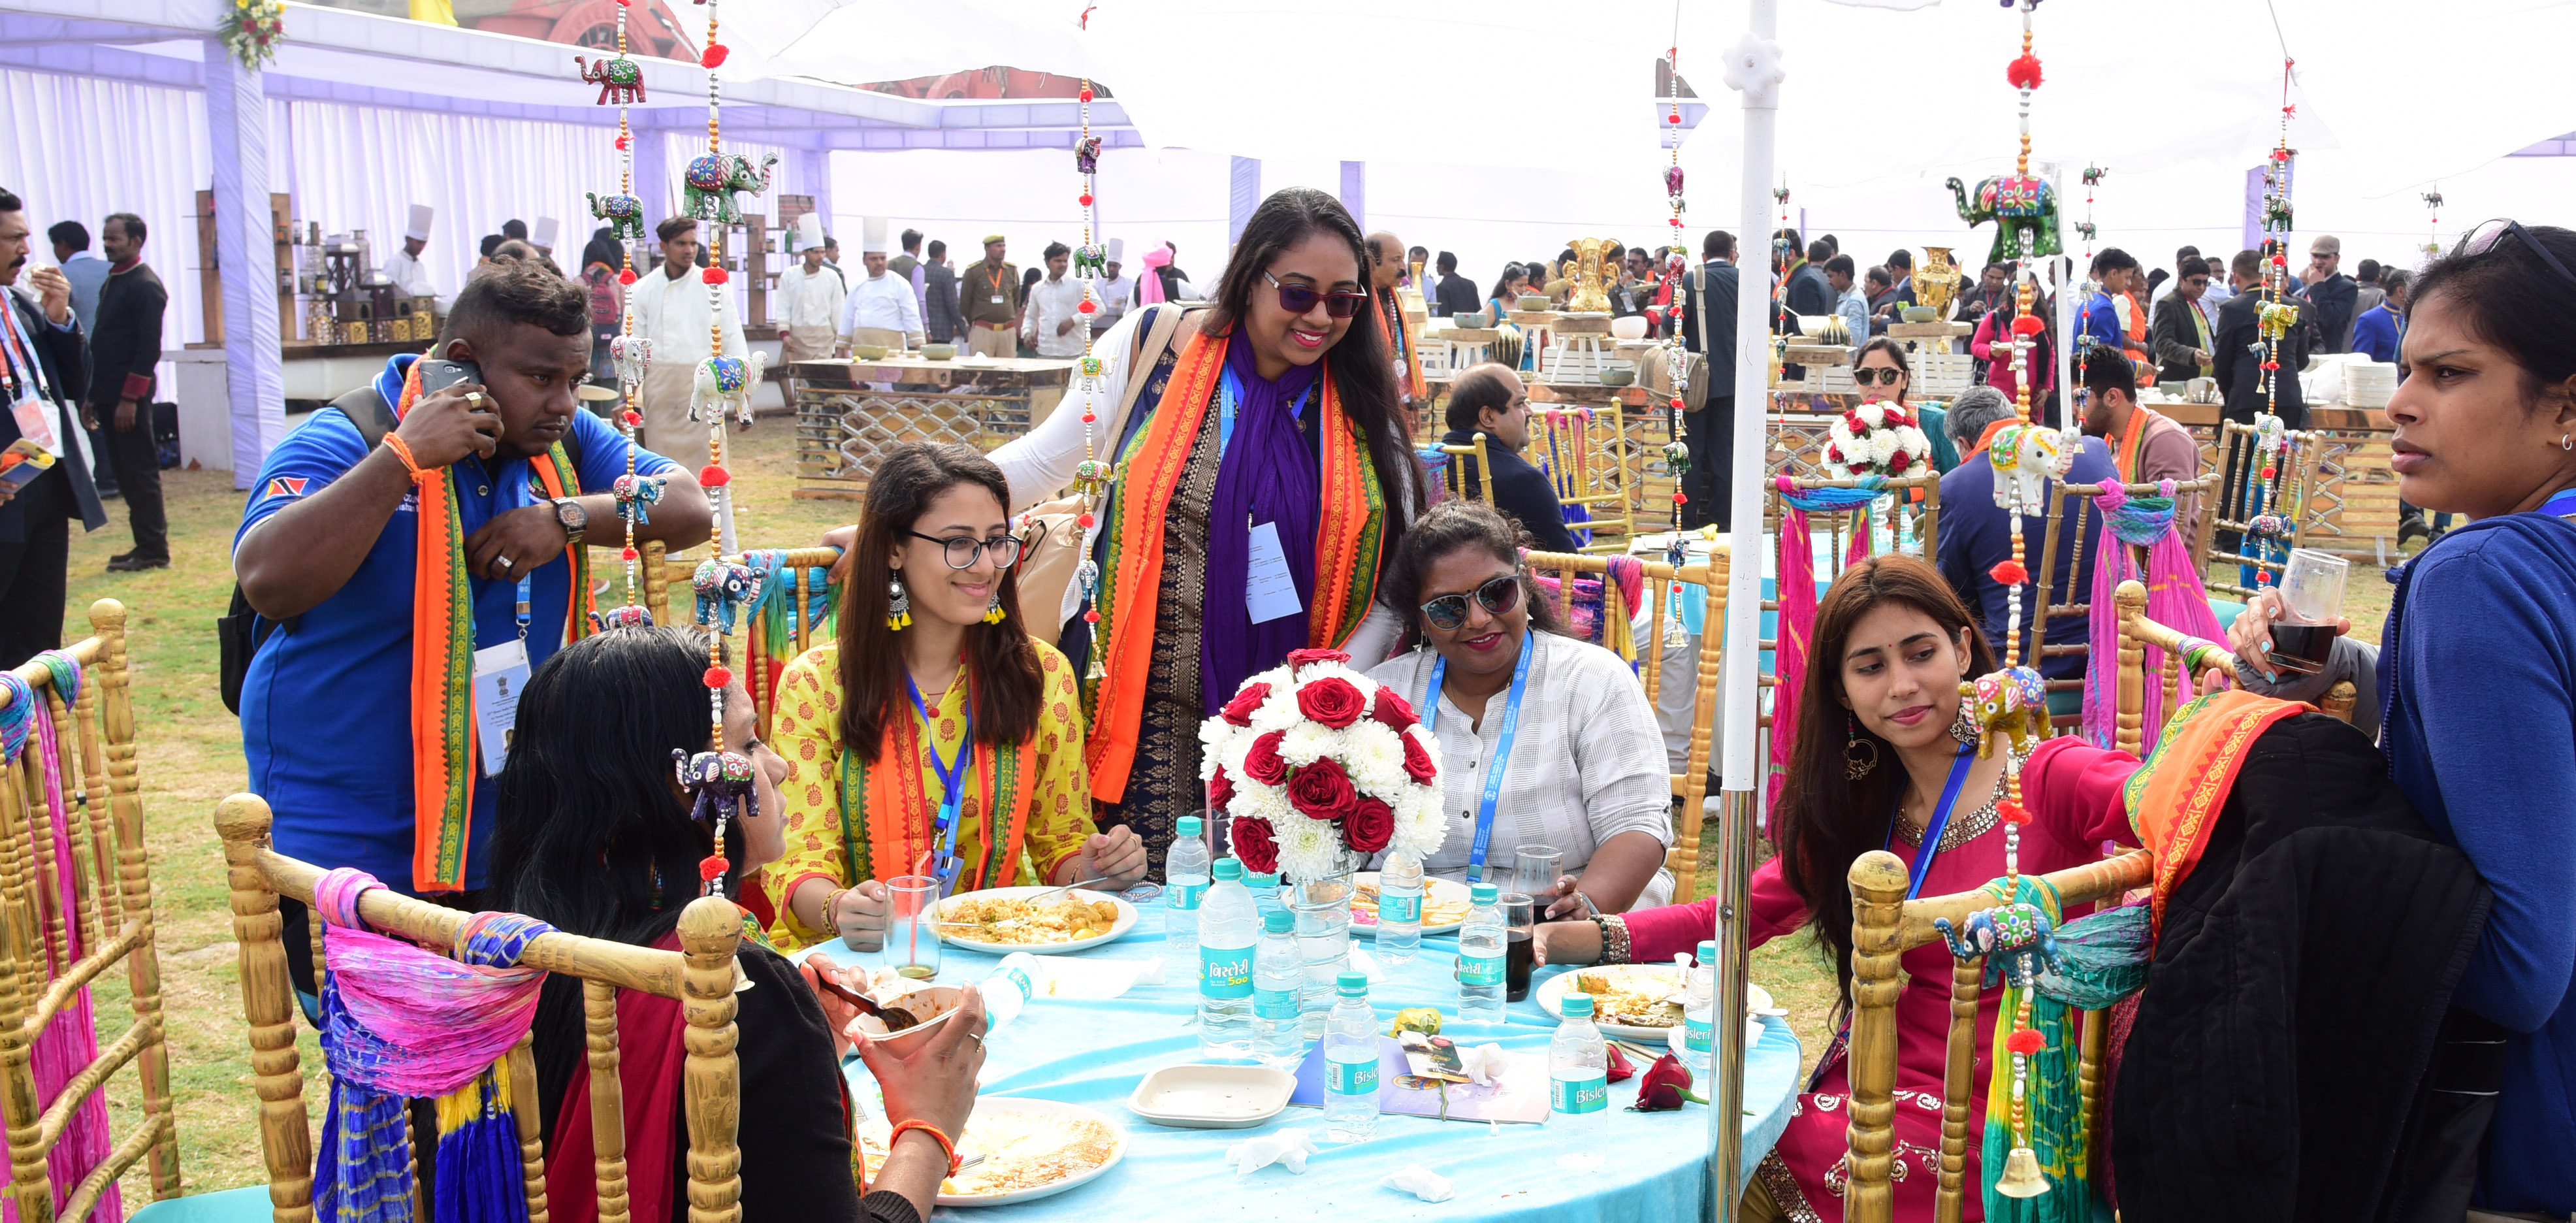 PBD delegates enjoying Indian hospitality at the sprawling Indraprastham Tent City in the Kumbh Mela area as they reached Prayagraj from Varanasi. Photo: Connected to India